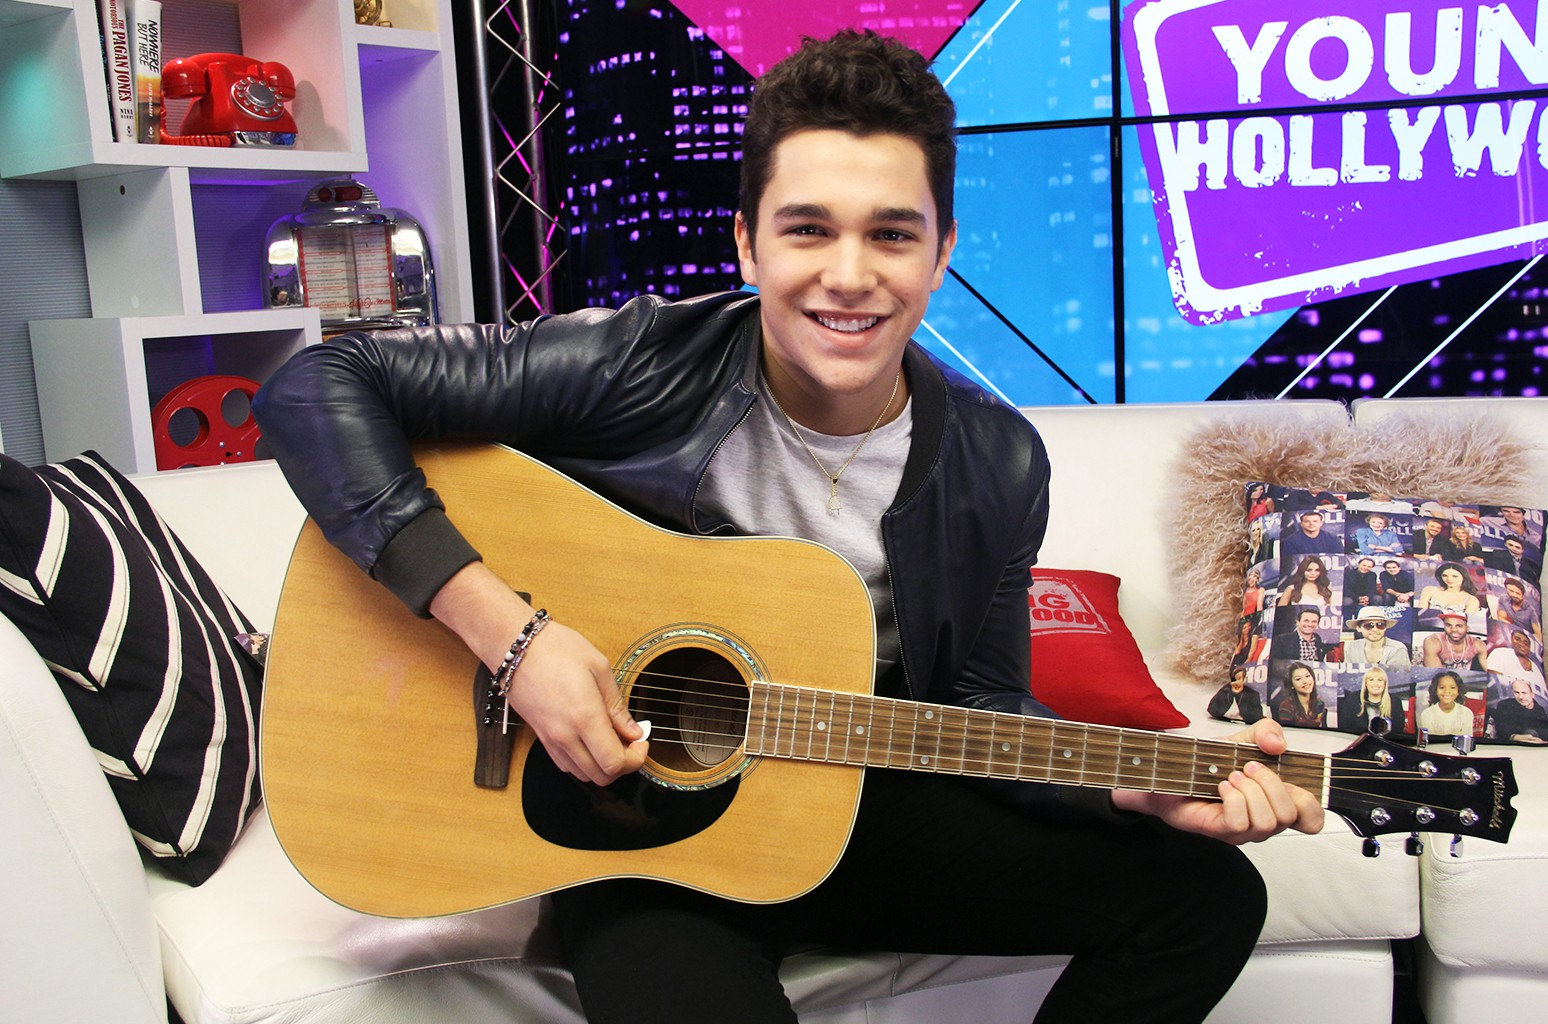 Austin Mahone visits the Young Hollywood Studio on Feb. 10, 2016 in Los Angeles.